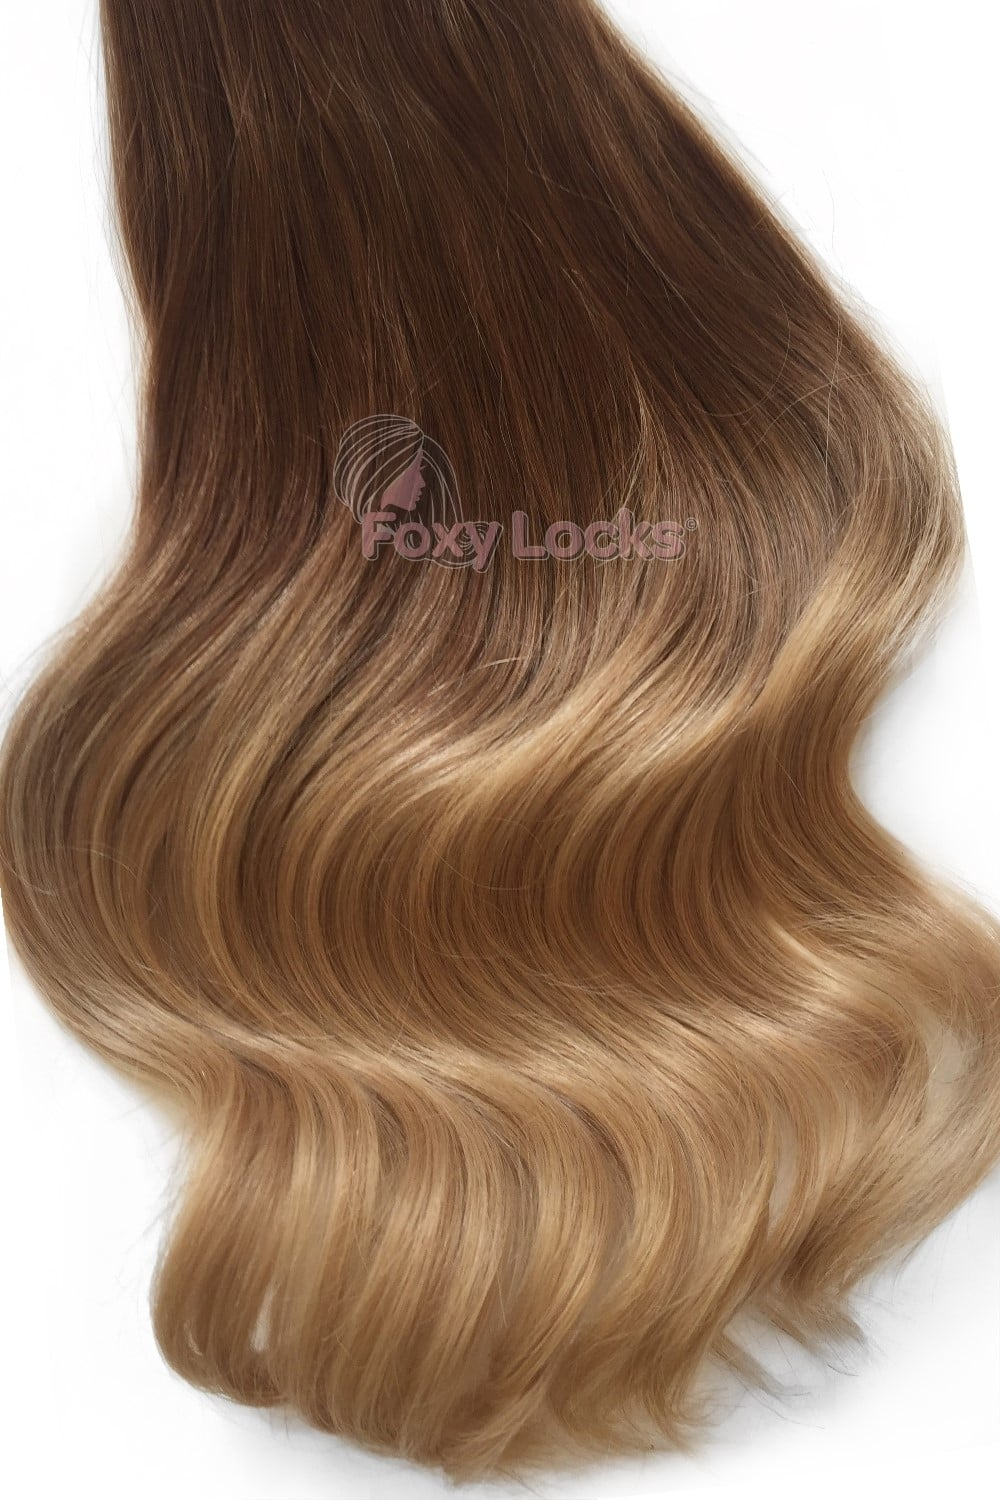 Spice ombre luxurious 24 clip in human hair extensions 280g honey spice ombre luxurious 24 clip in human hair extensions 280g pmusecretfo Image collections